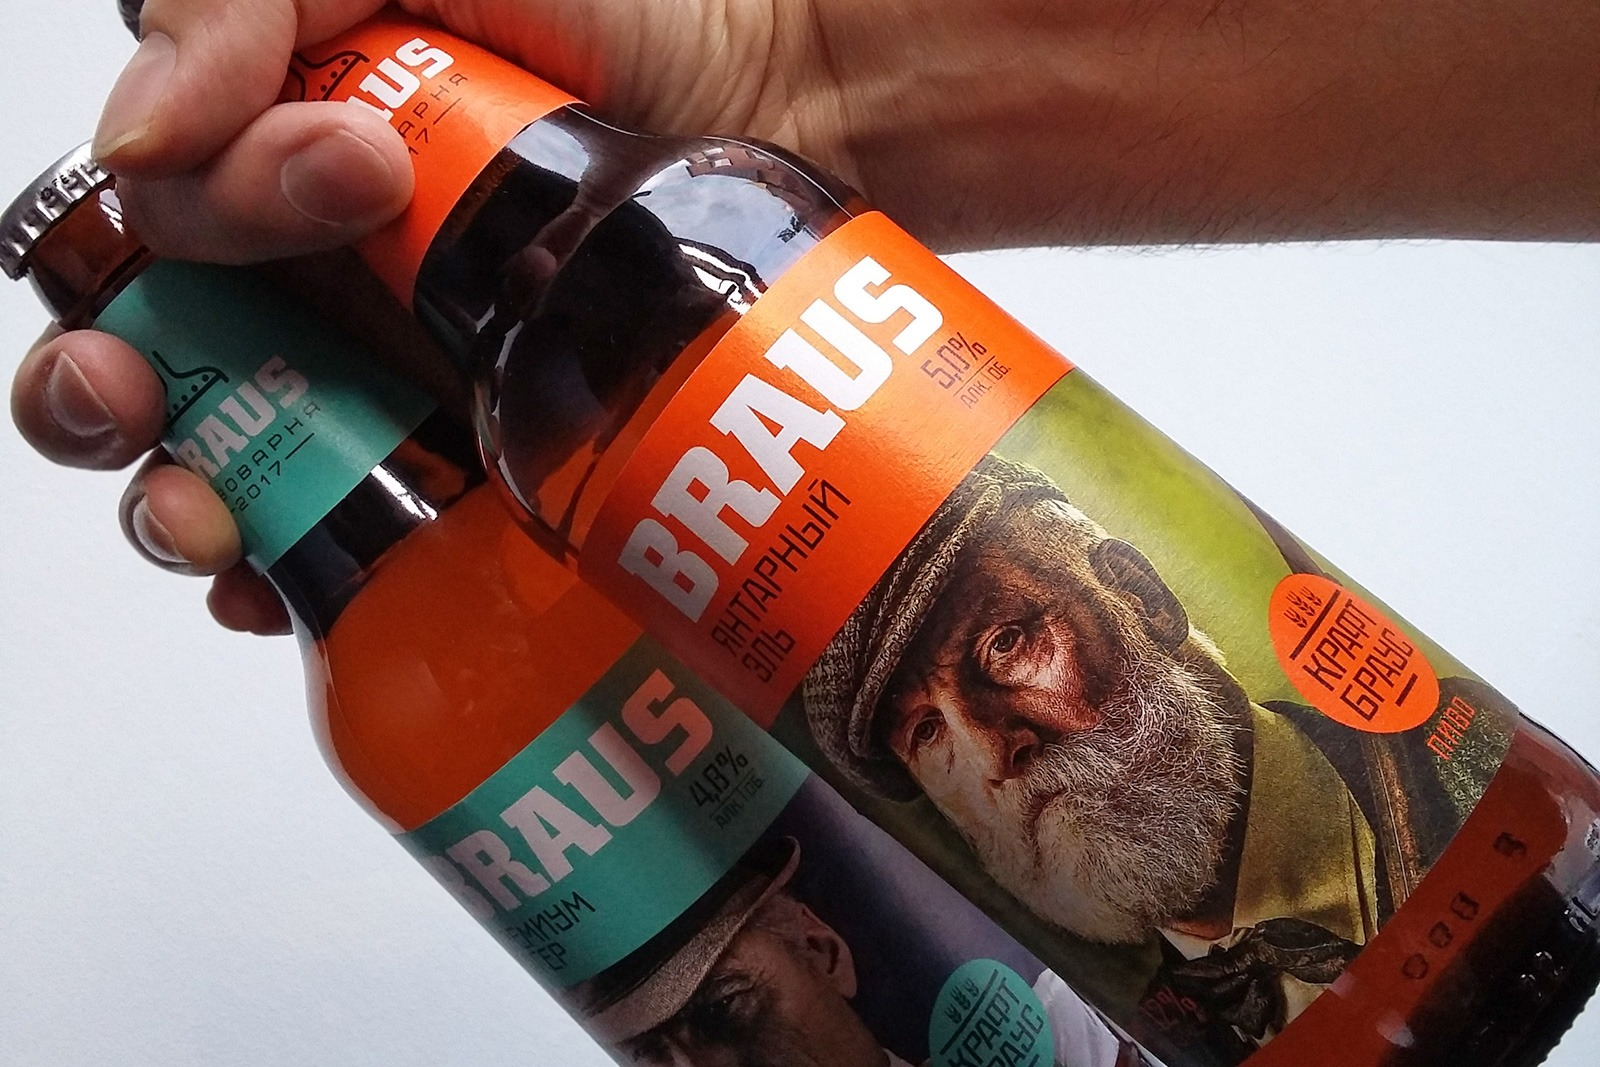 Braus, Asgard branding, packaging, trademark, package design, graphic design, пиво Браус